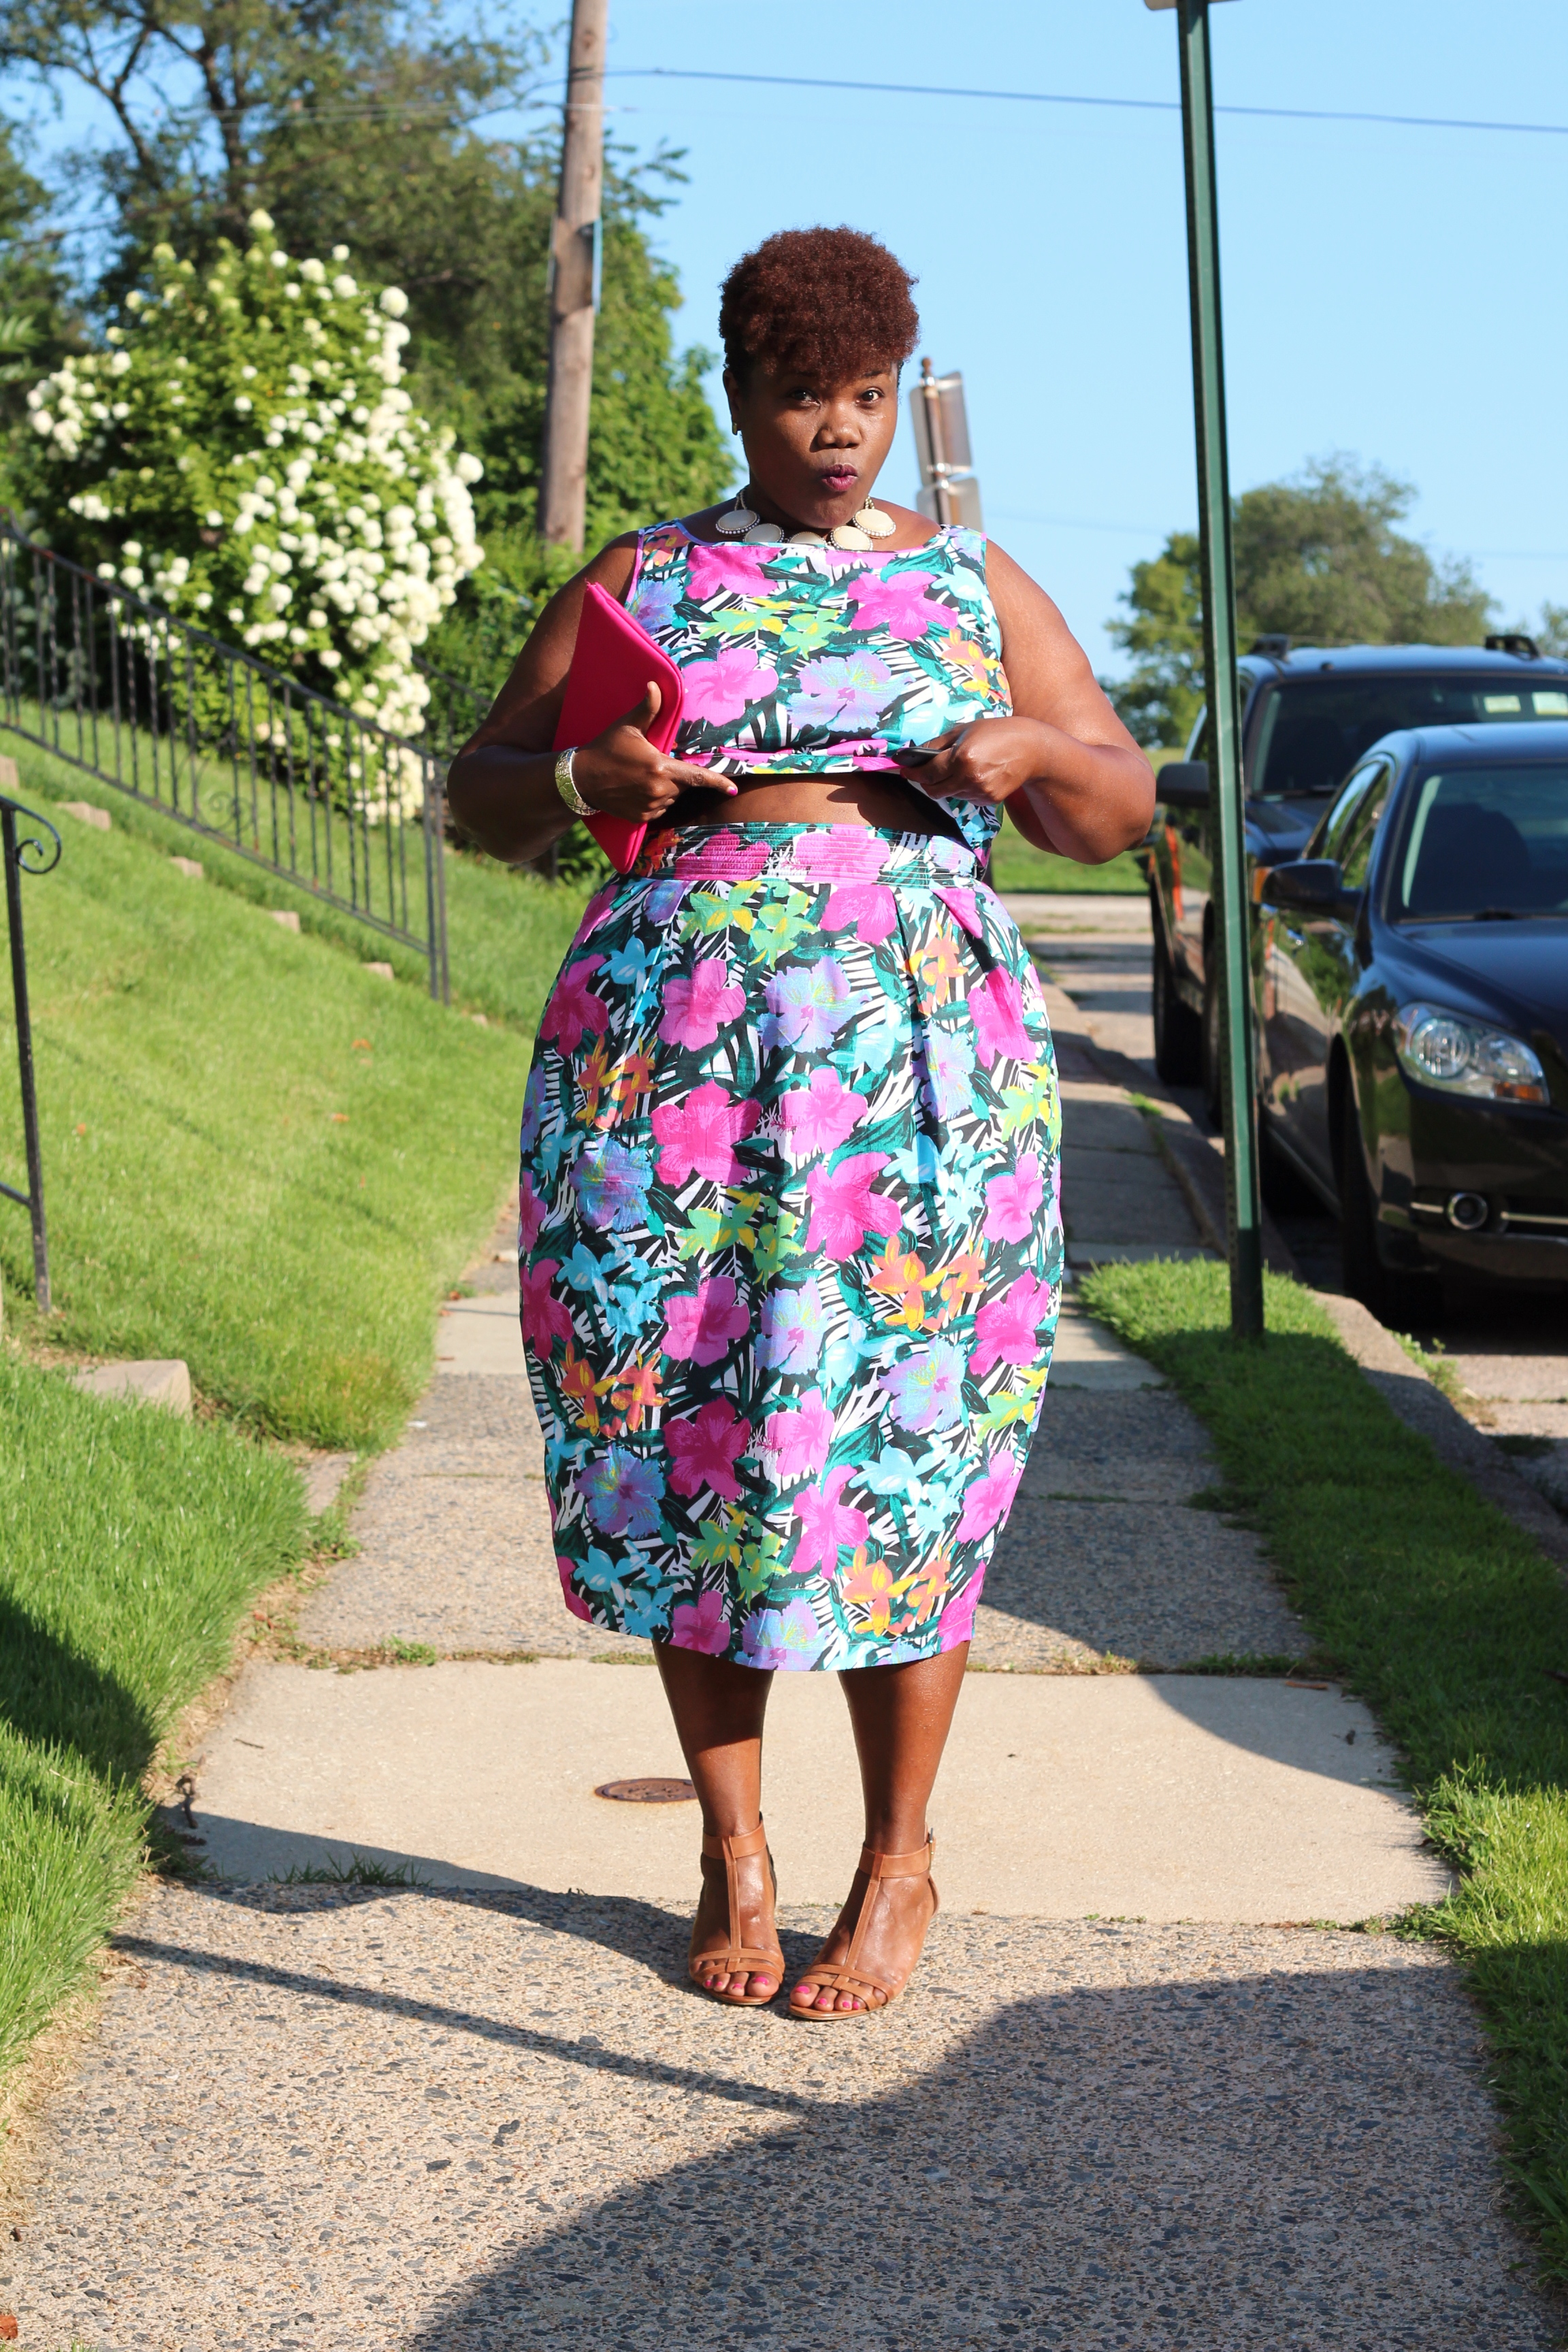 curvy women, curvy, curvy girls, plus size clothing, eshakti, crop tops, plus size skirts, plus size fashion, curvy blogs, curvy bloggers, plus size blogs, plus size bloggers, fat blogs, fat bloggers, floral print, midi skirts, sumer trends